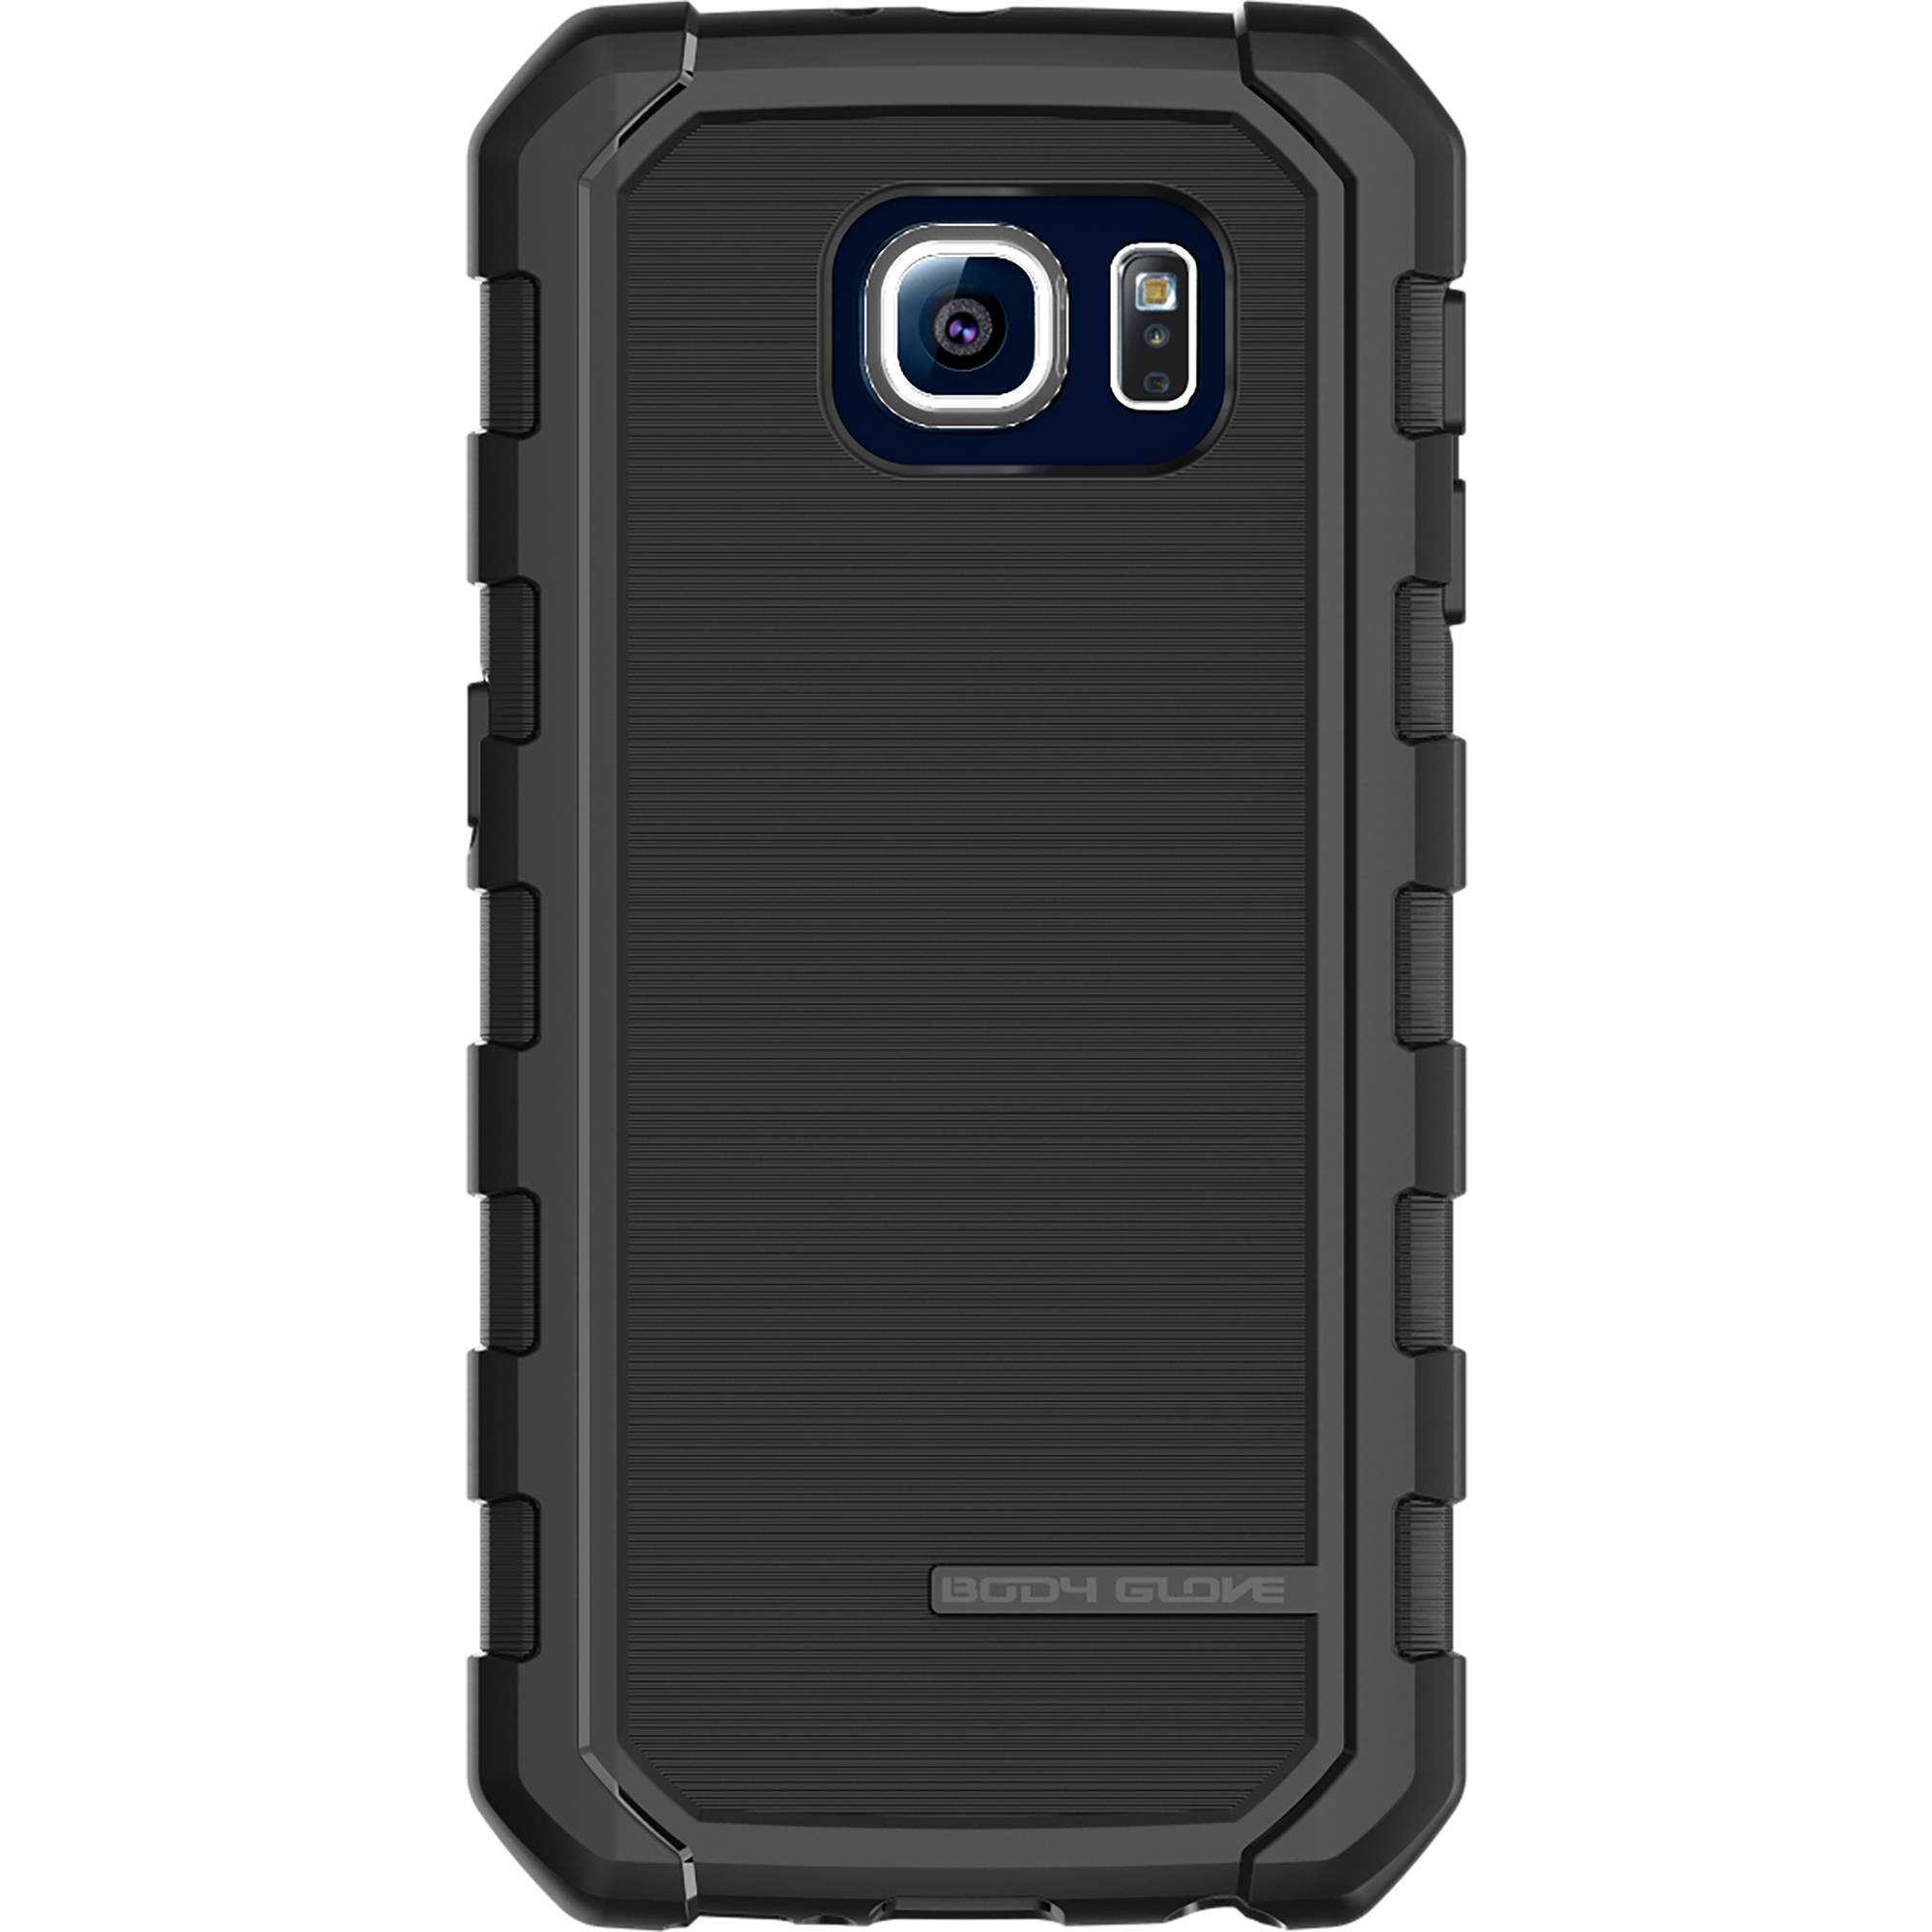 Captivating Body Glove Rugged Case For Samsung Galaxy S6